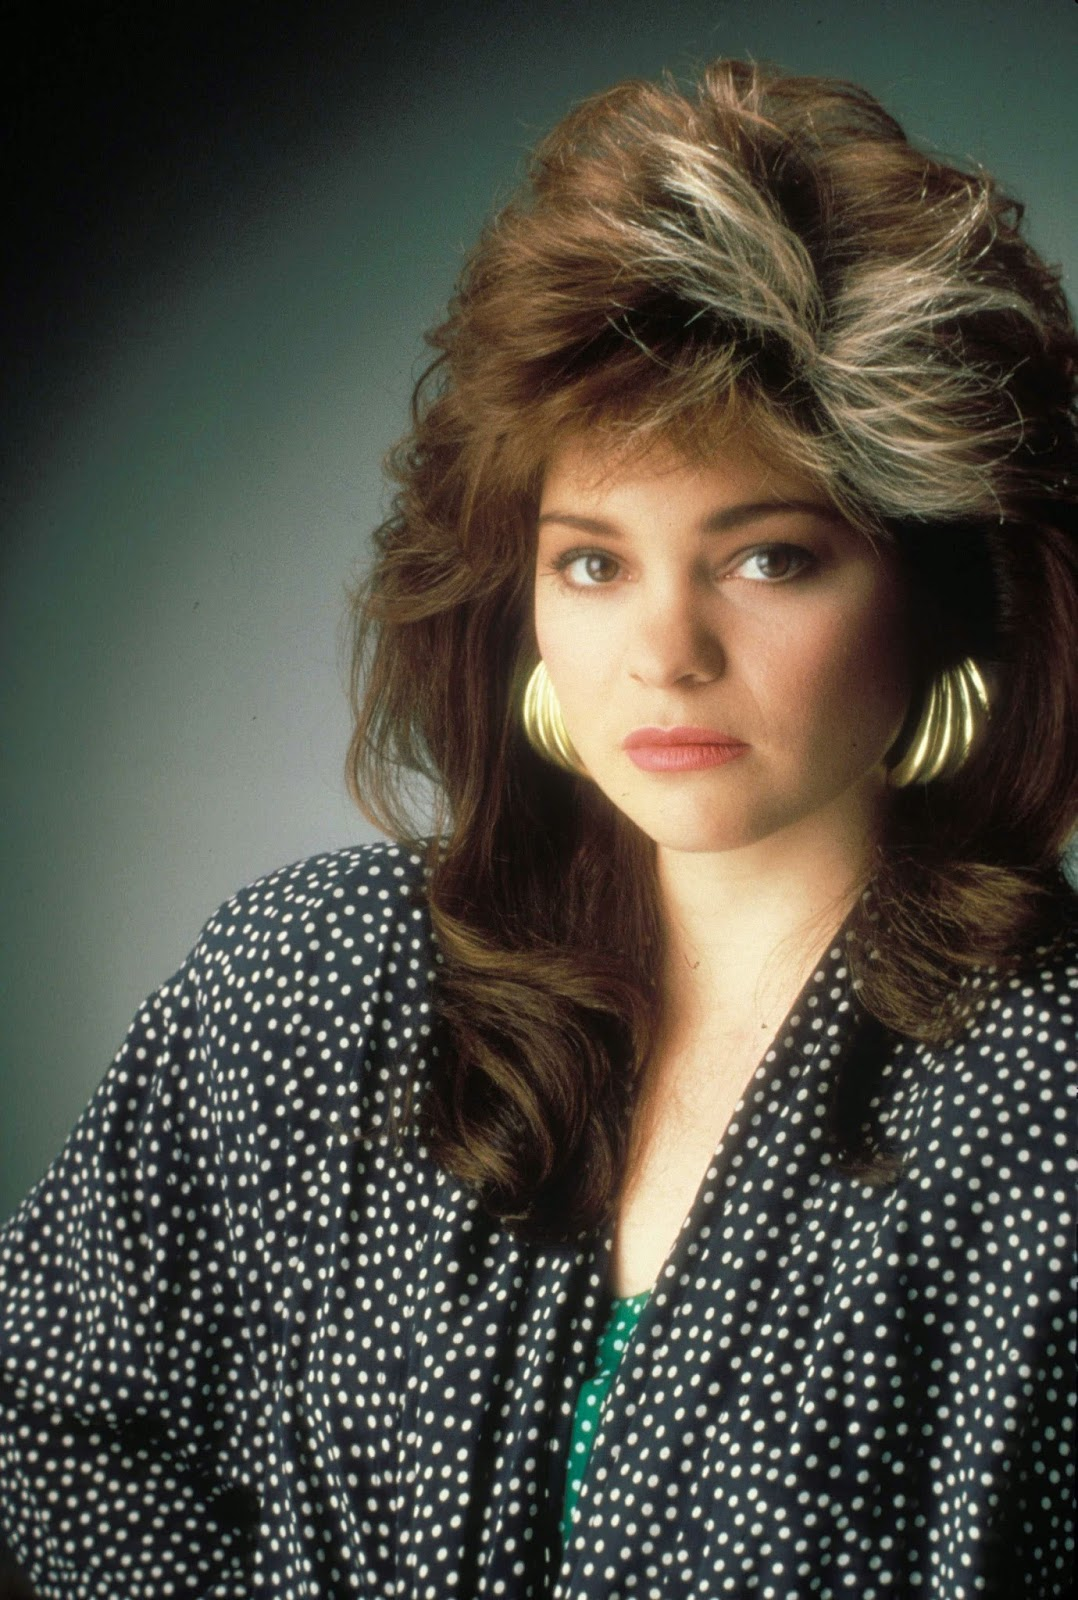 Ladies In Satin Blouses Valerie Bertinelli Various Pictures